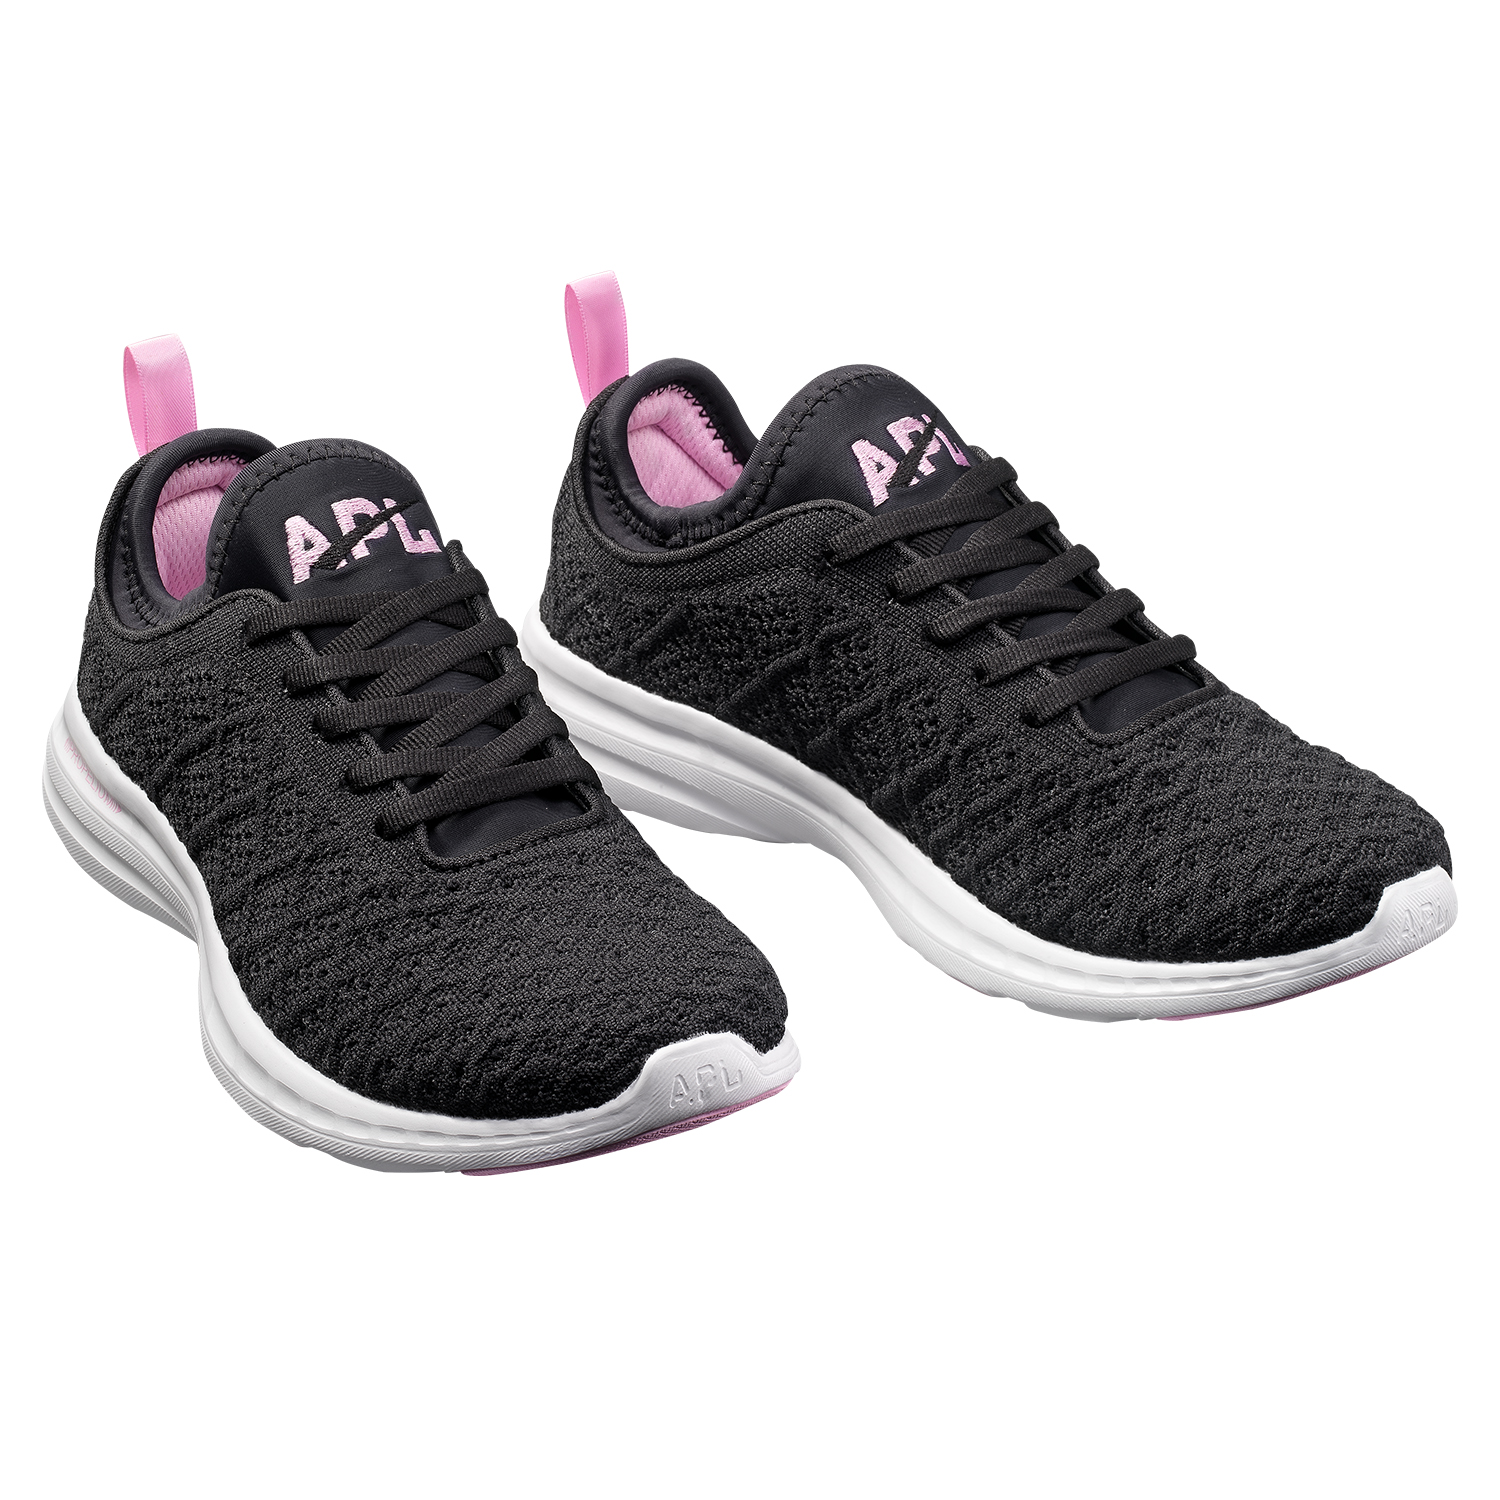 APL Techloom Phantom $175,00  After the founders of APL lost their grandmother to breast cancer, they made it part of their company's mission to serve others battling the disease. For each pair sold, the brand will donate 20% of the retail price for this edition of their incredibly comfortable and functional Phantom sneakers to the Women's Cancer Research Fund.